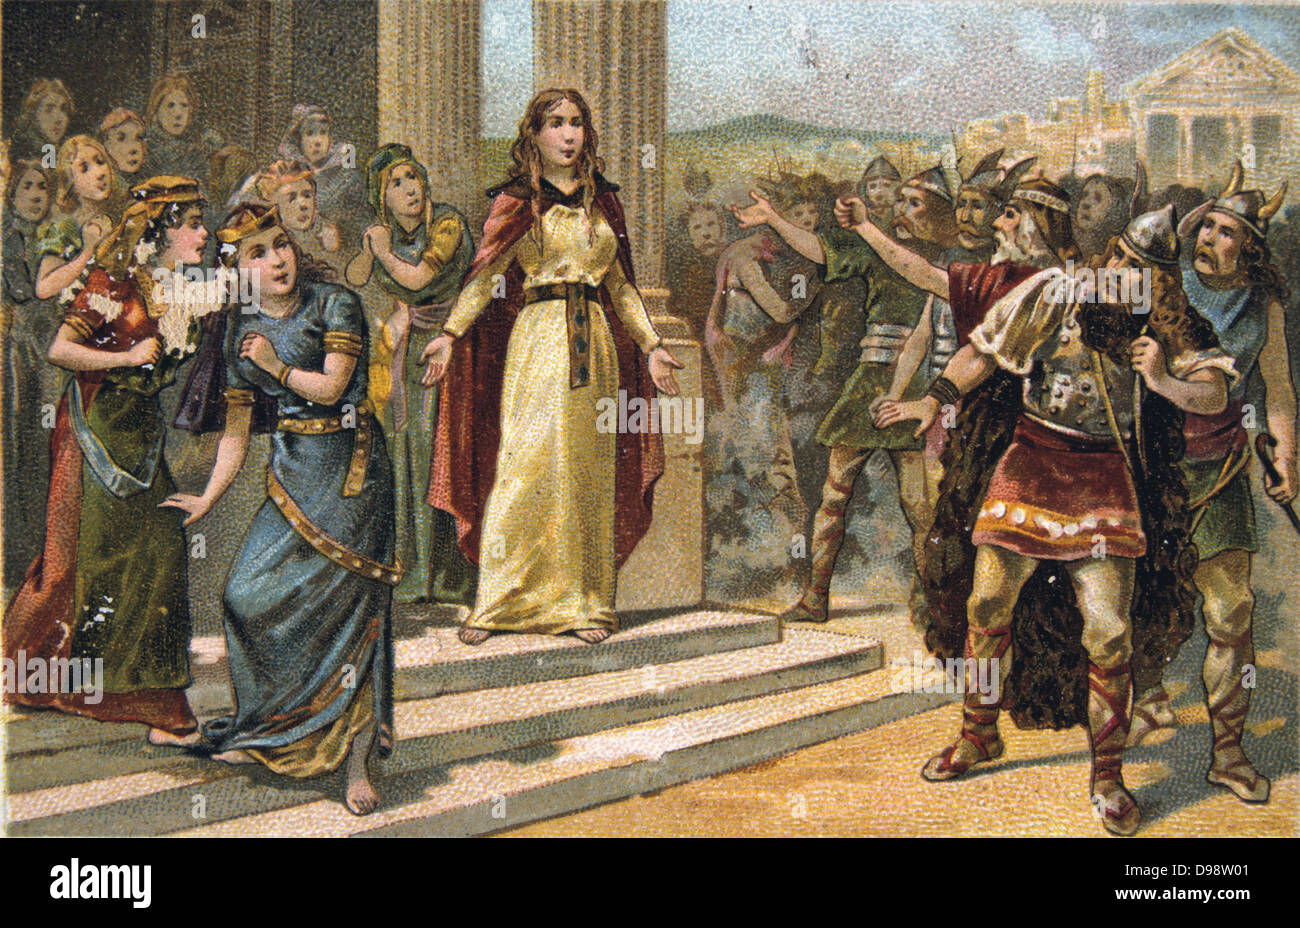 Saint Genevieve of Paris (c419/422-502/512), in her role as protector of the welfare of the city's virgins, confronting Stock Photo